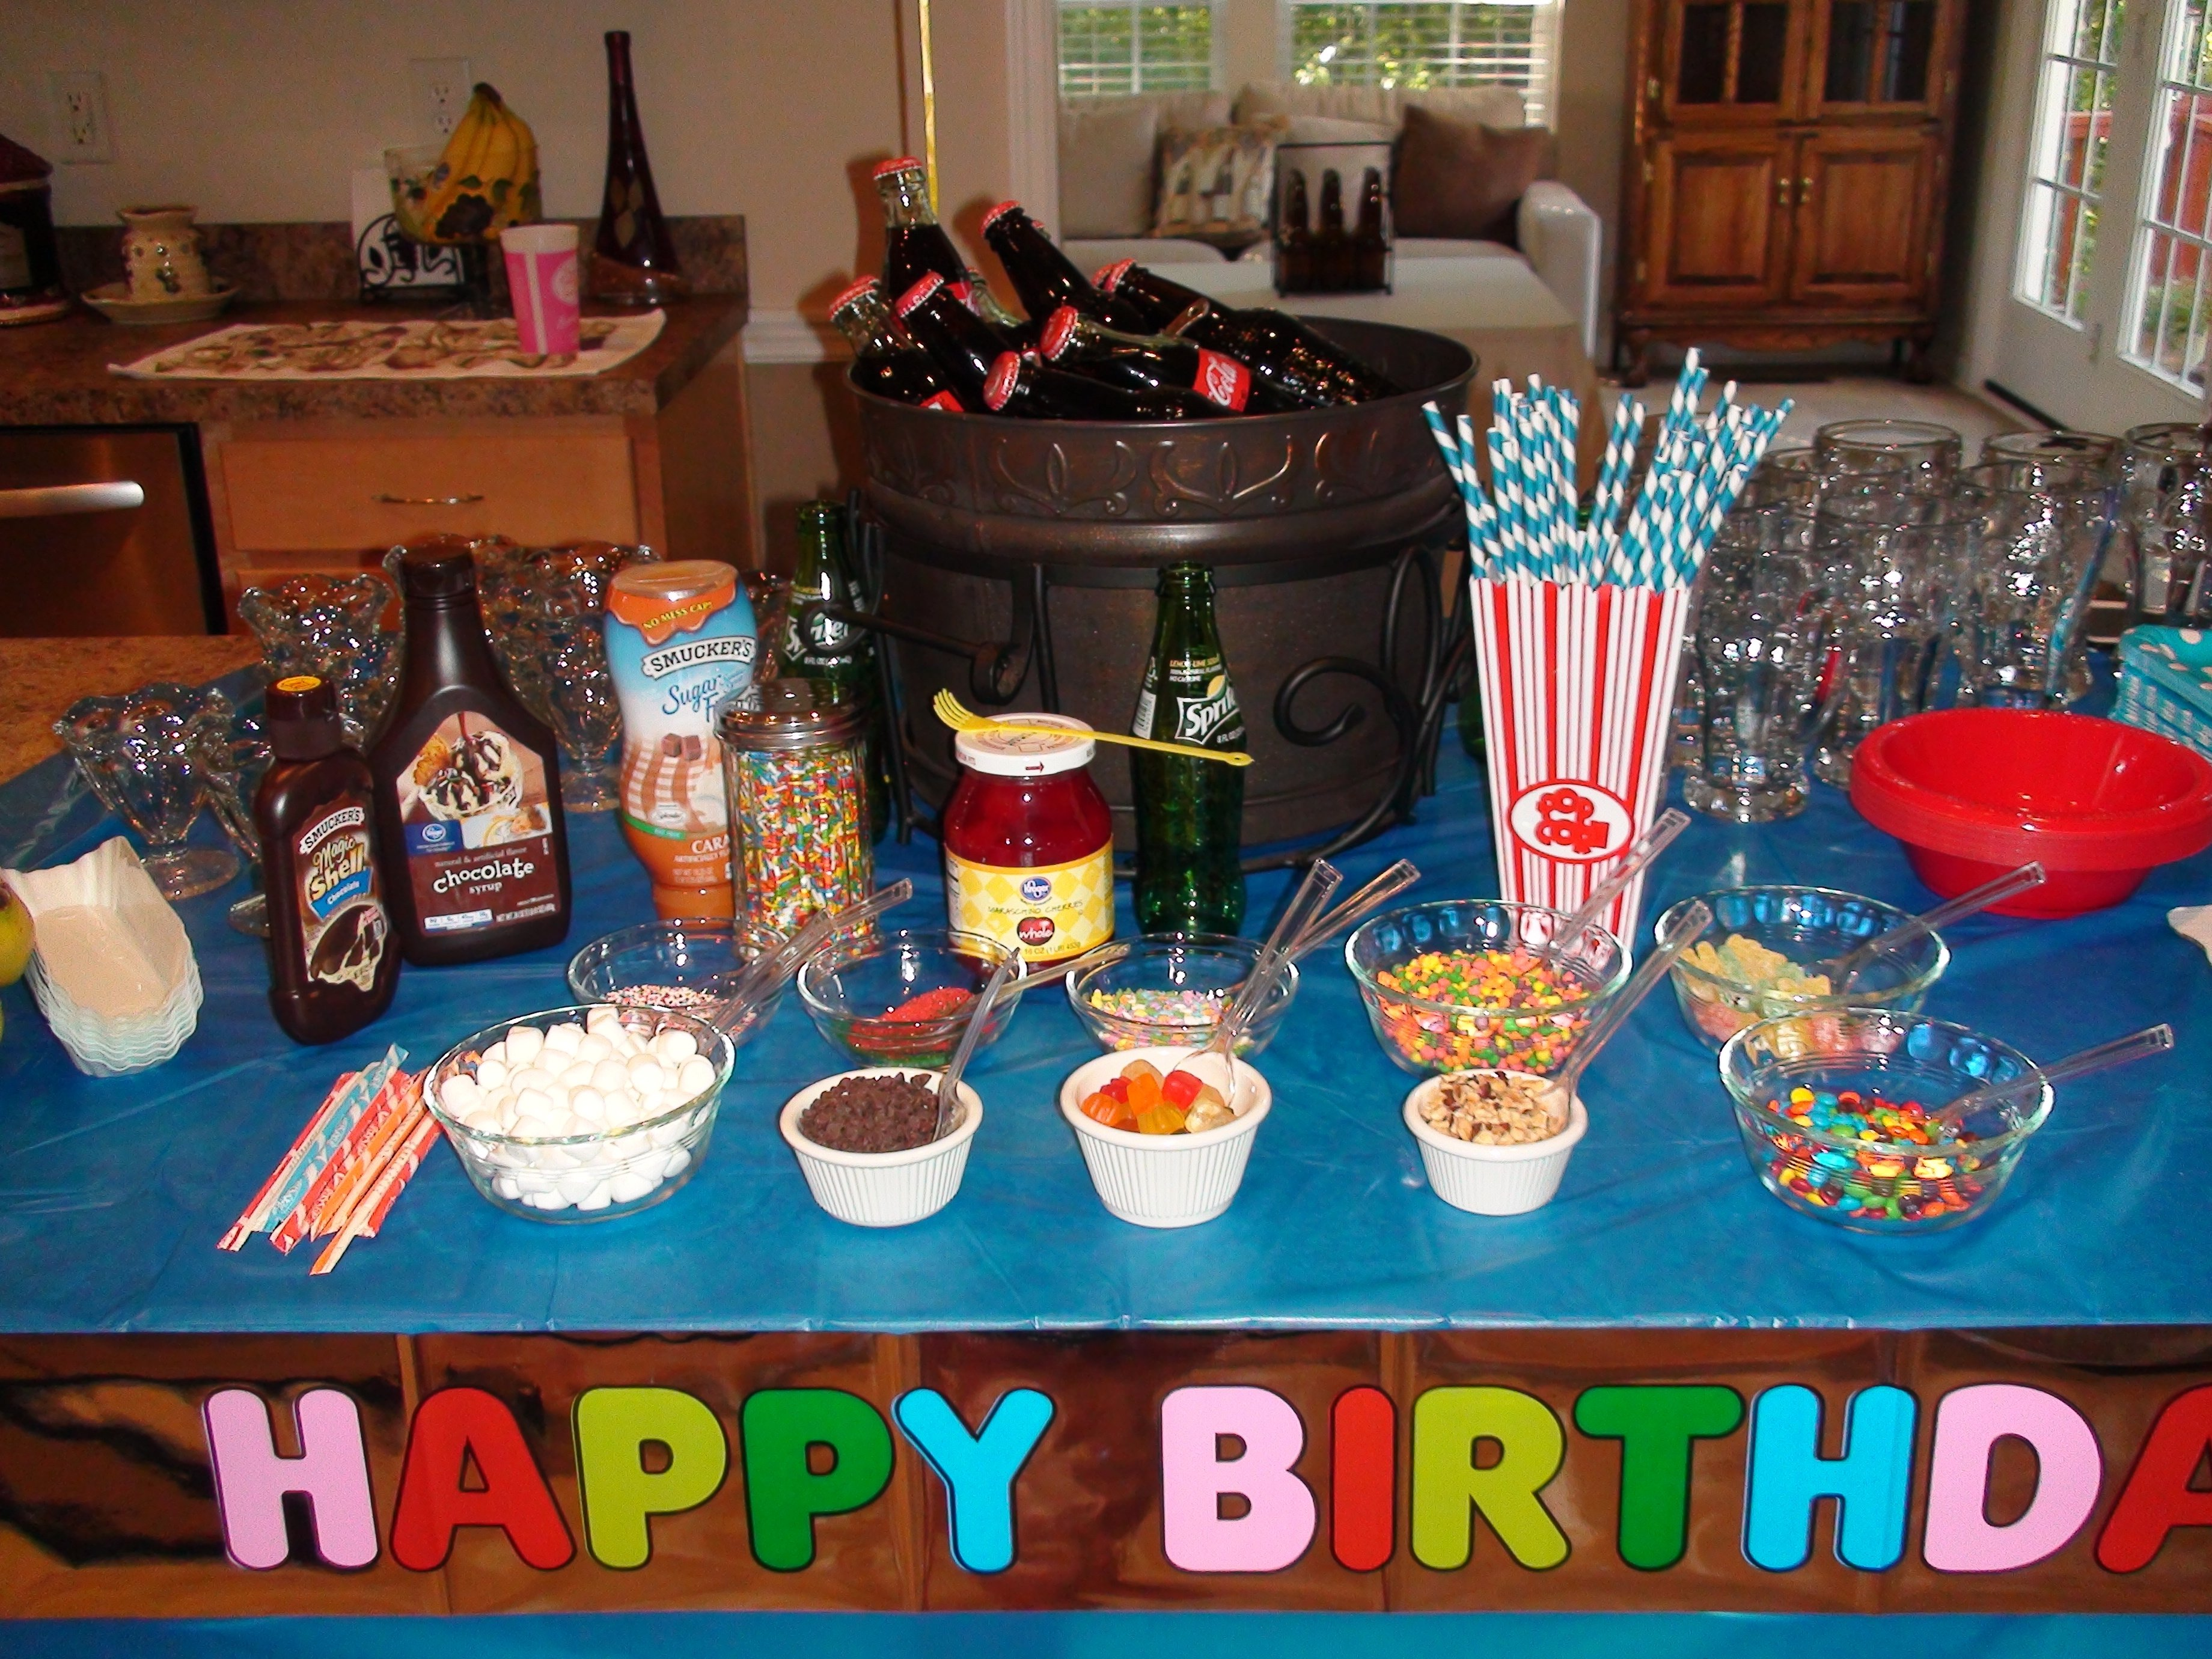 10 Beautiful Birthday Ideas For 12 Year Olds themes birthday ideas for a 14 year old birthday party boy as well